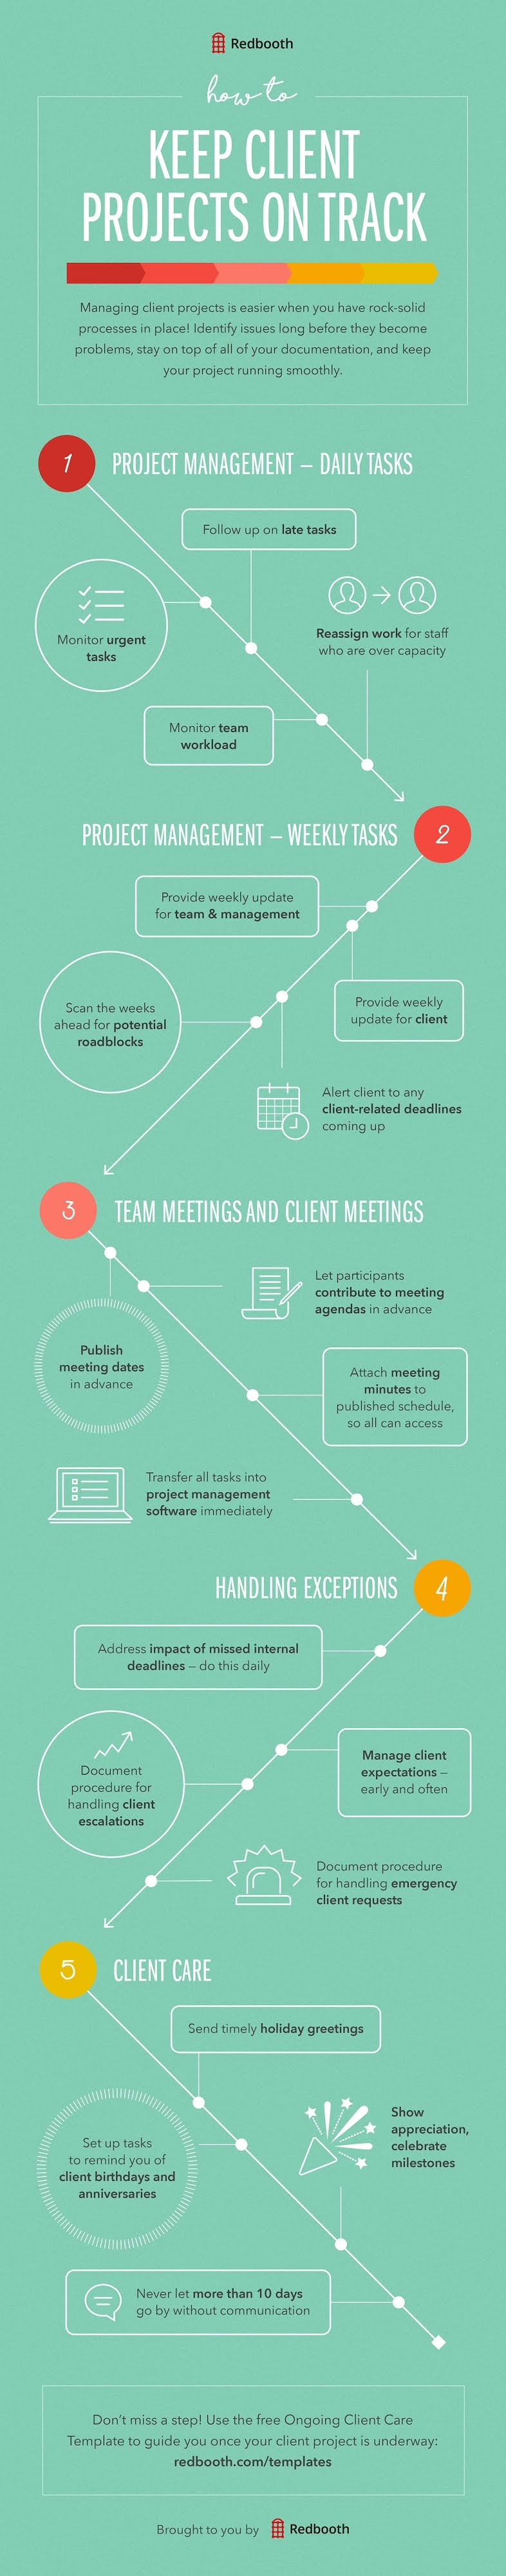 Client Projects Management #infographic